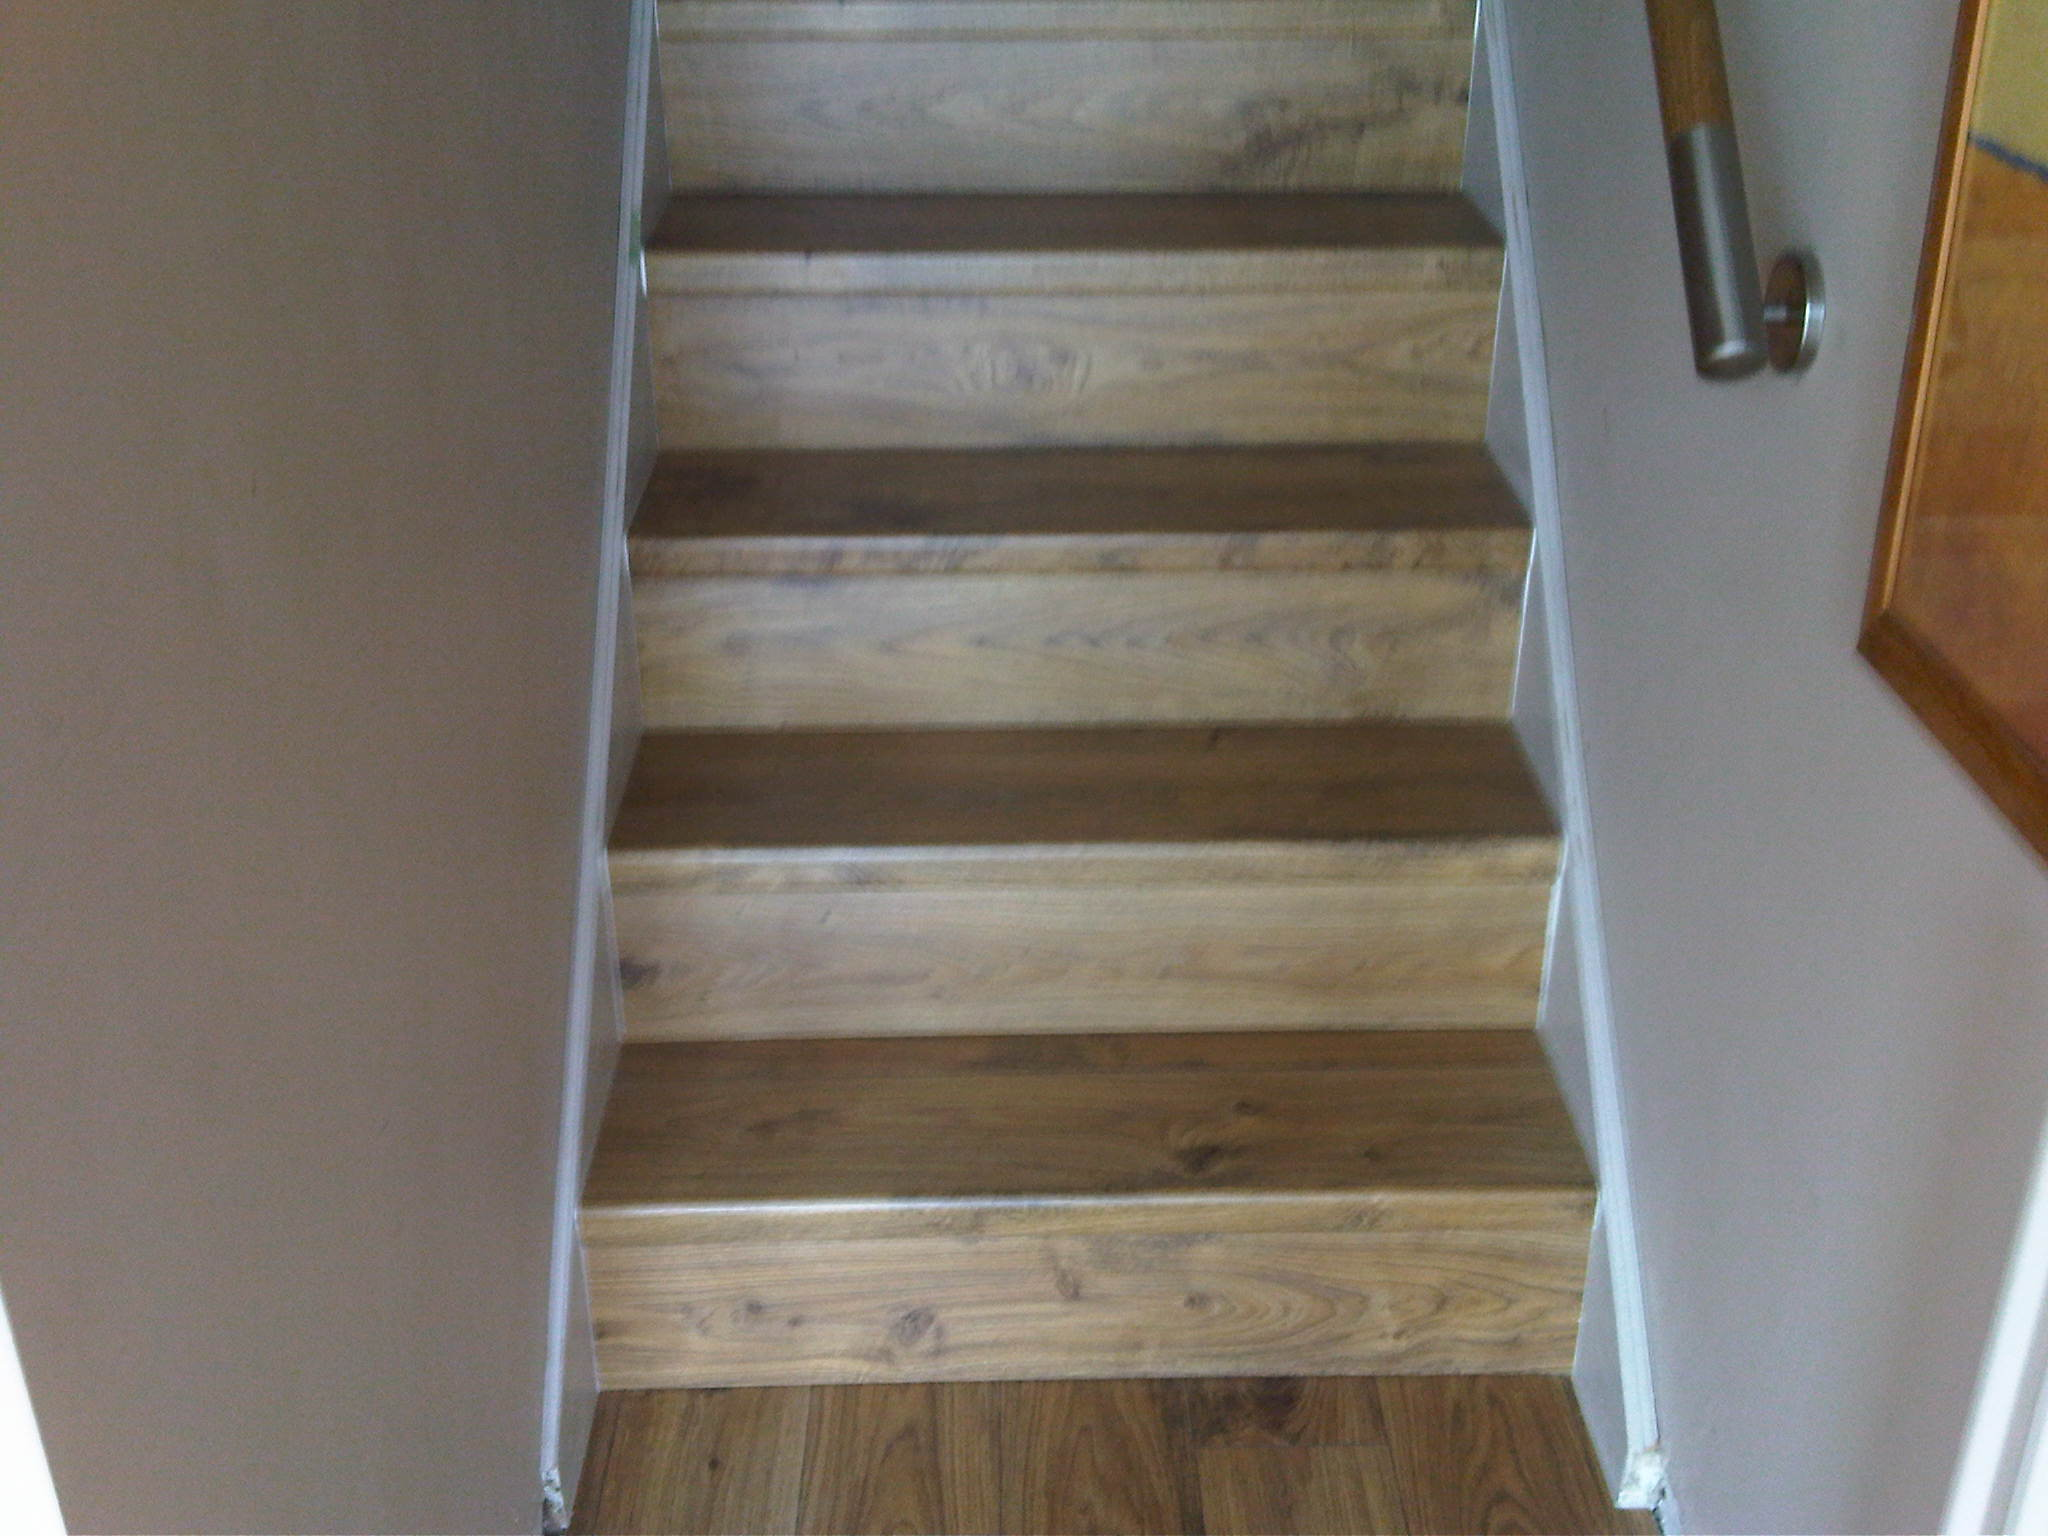 Beige staircase with wooden stairs